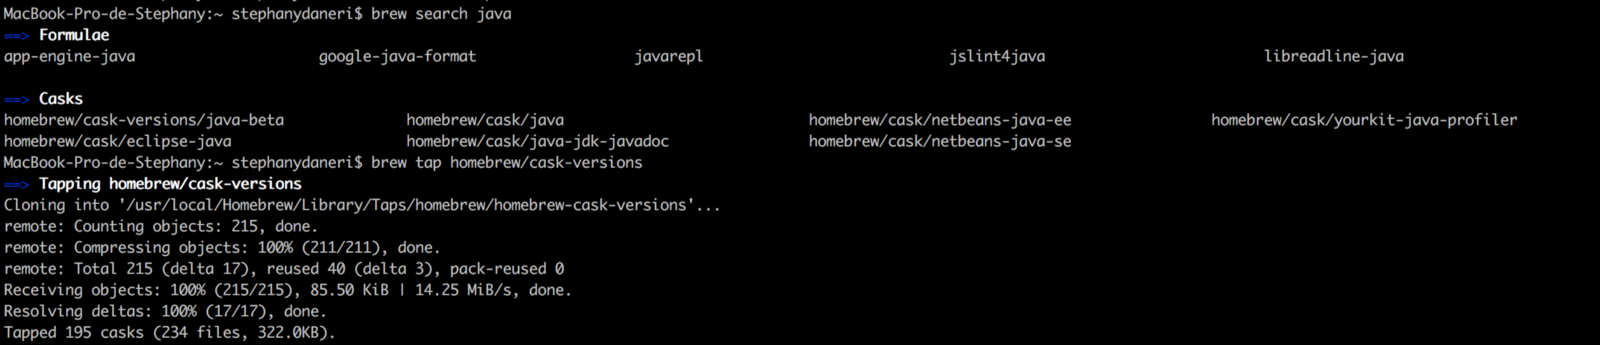 Brew cask install java location | Hadoop Installation on Mac